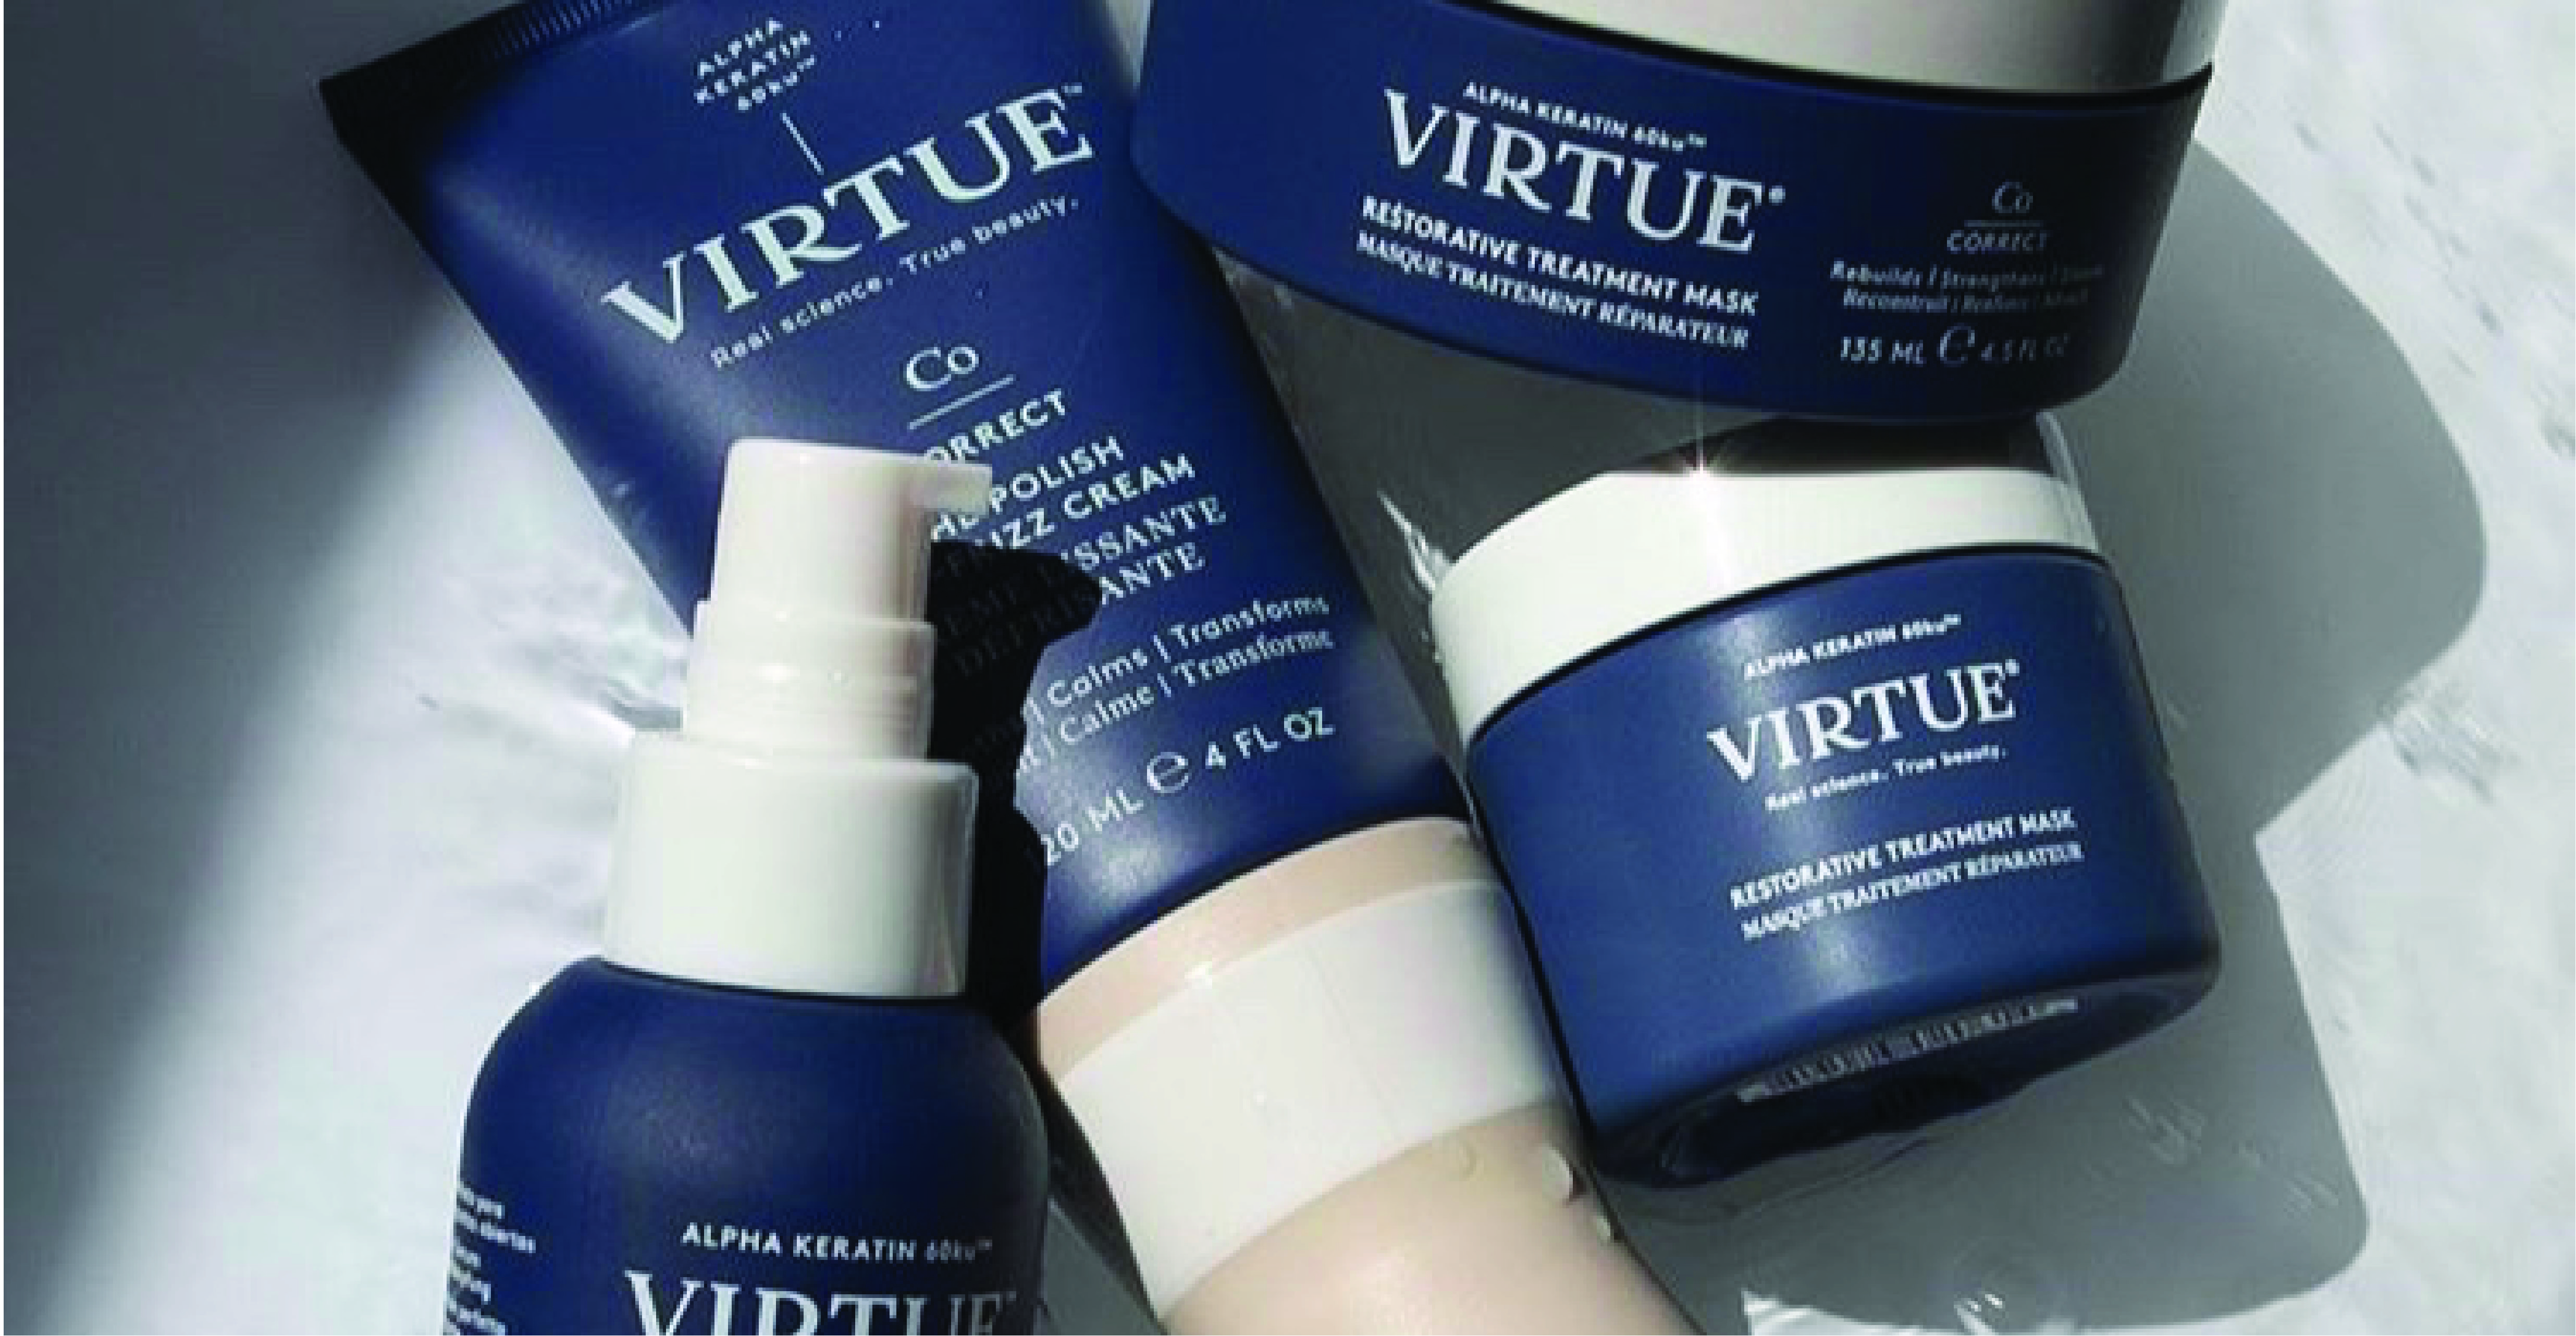 beautiful soft touch finish custom packaging for virtue hair care